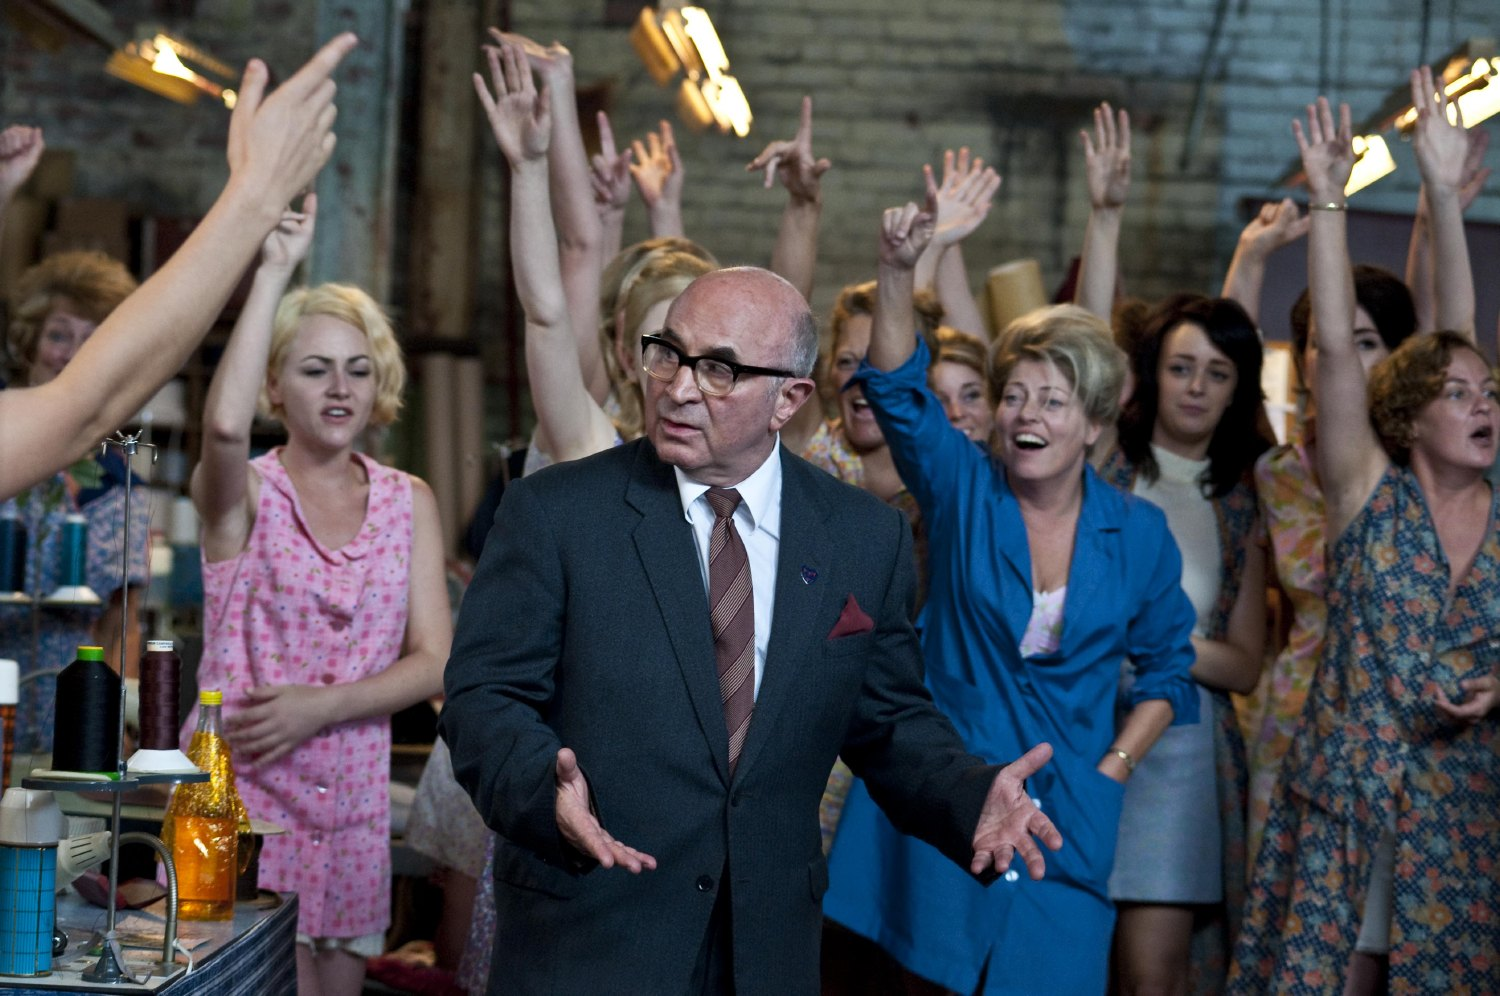 photo-We-want-sex-Made-in-Dagenham-2009-2